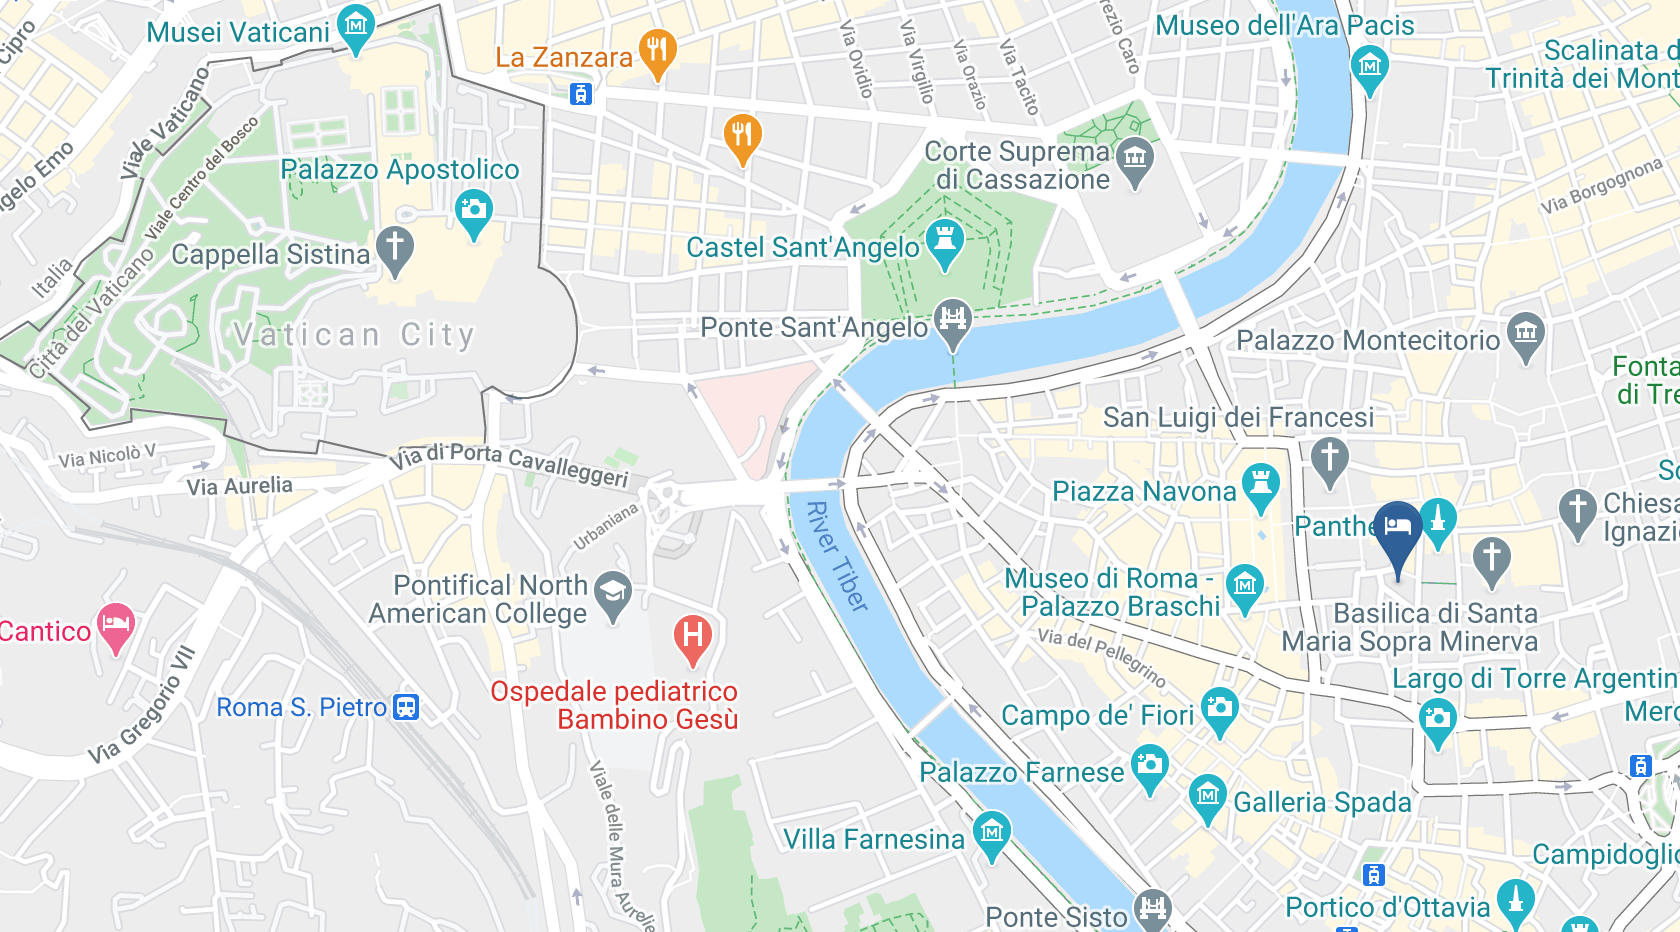 Google Map of Pantheon Iconic Rome